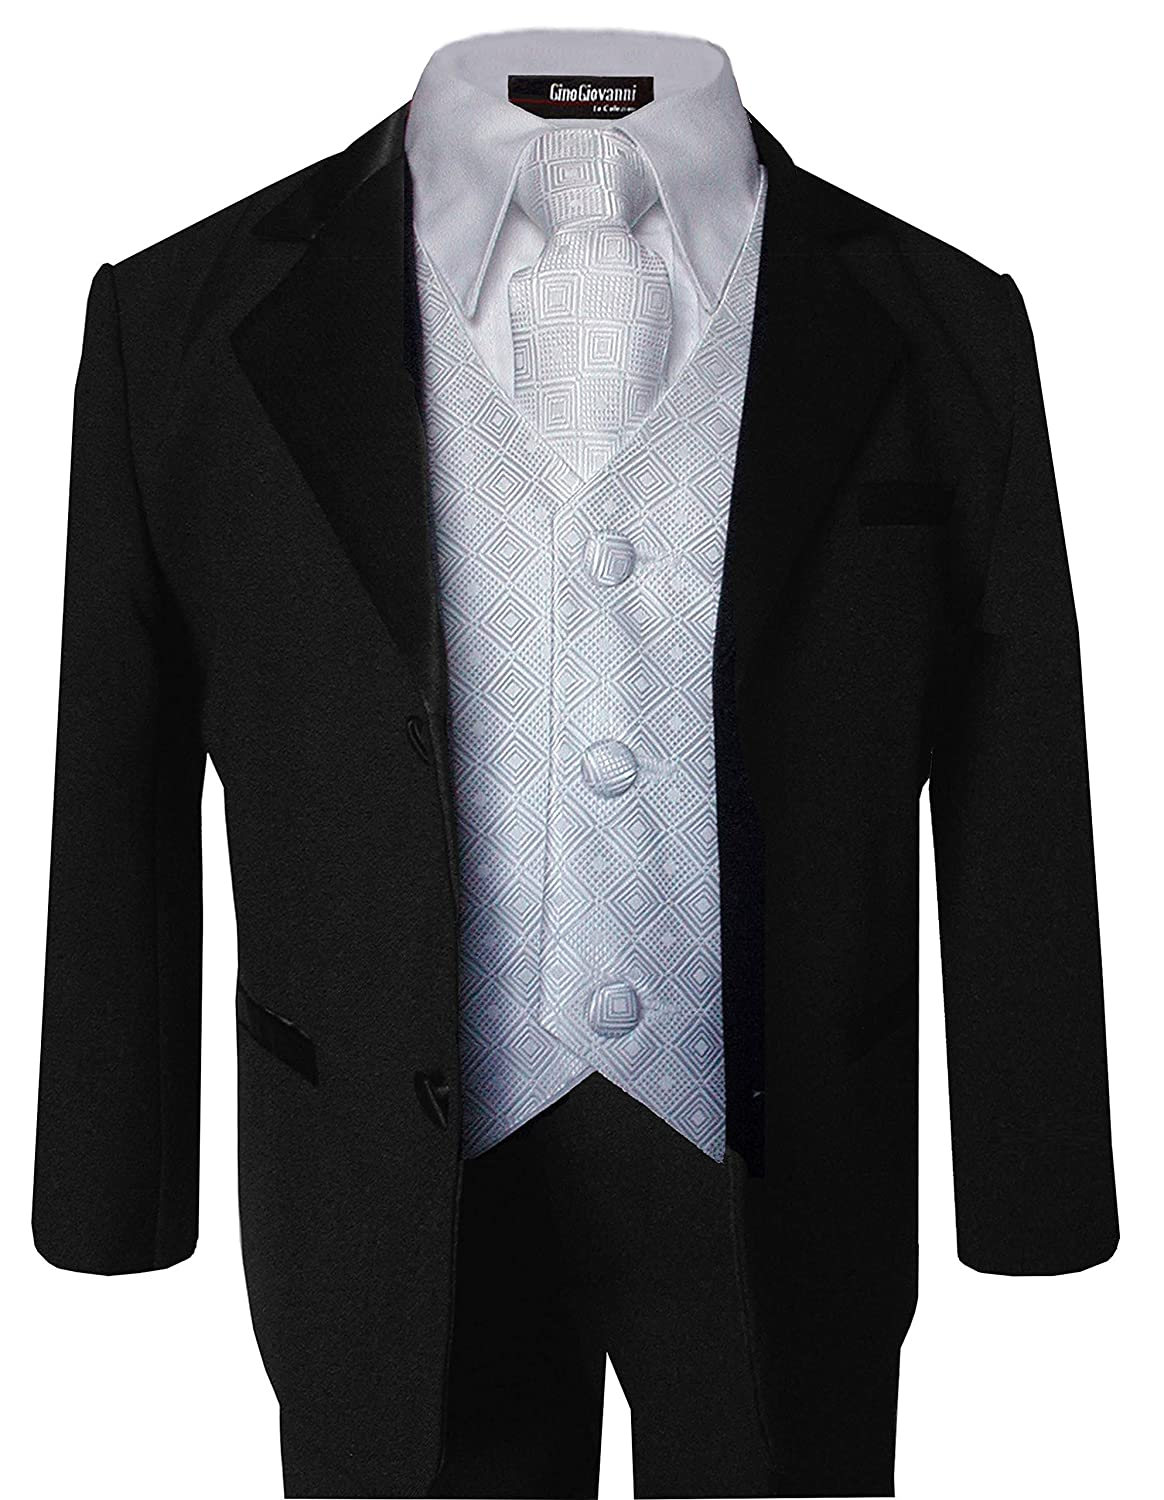 Gino Giovanni Boys Formal Dresswear Set